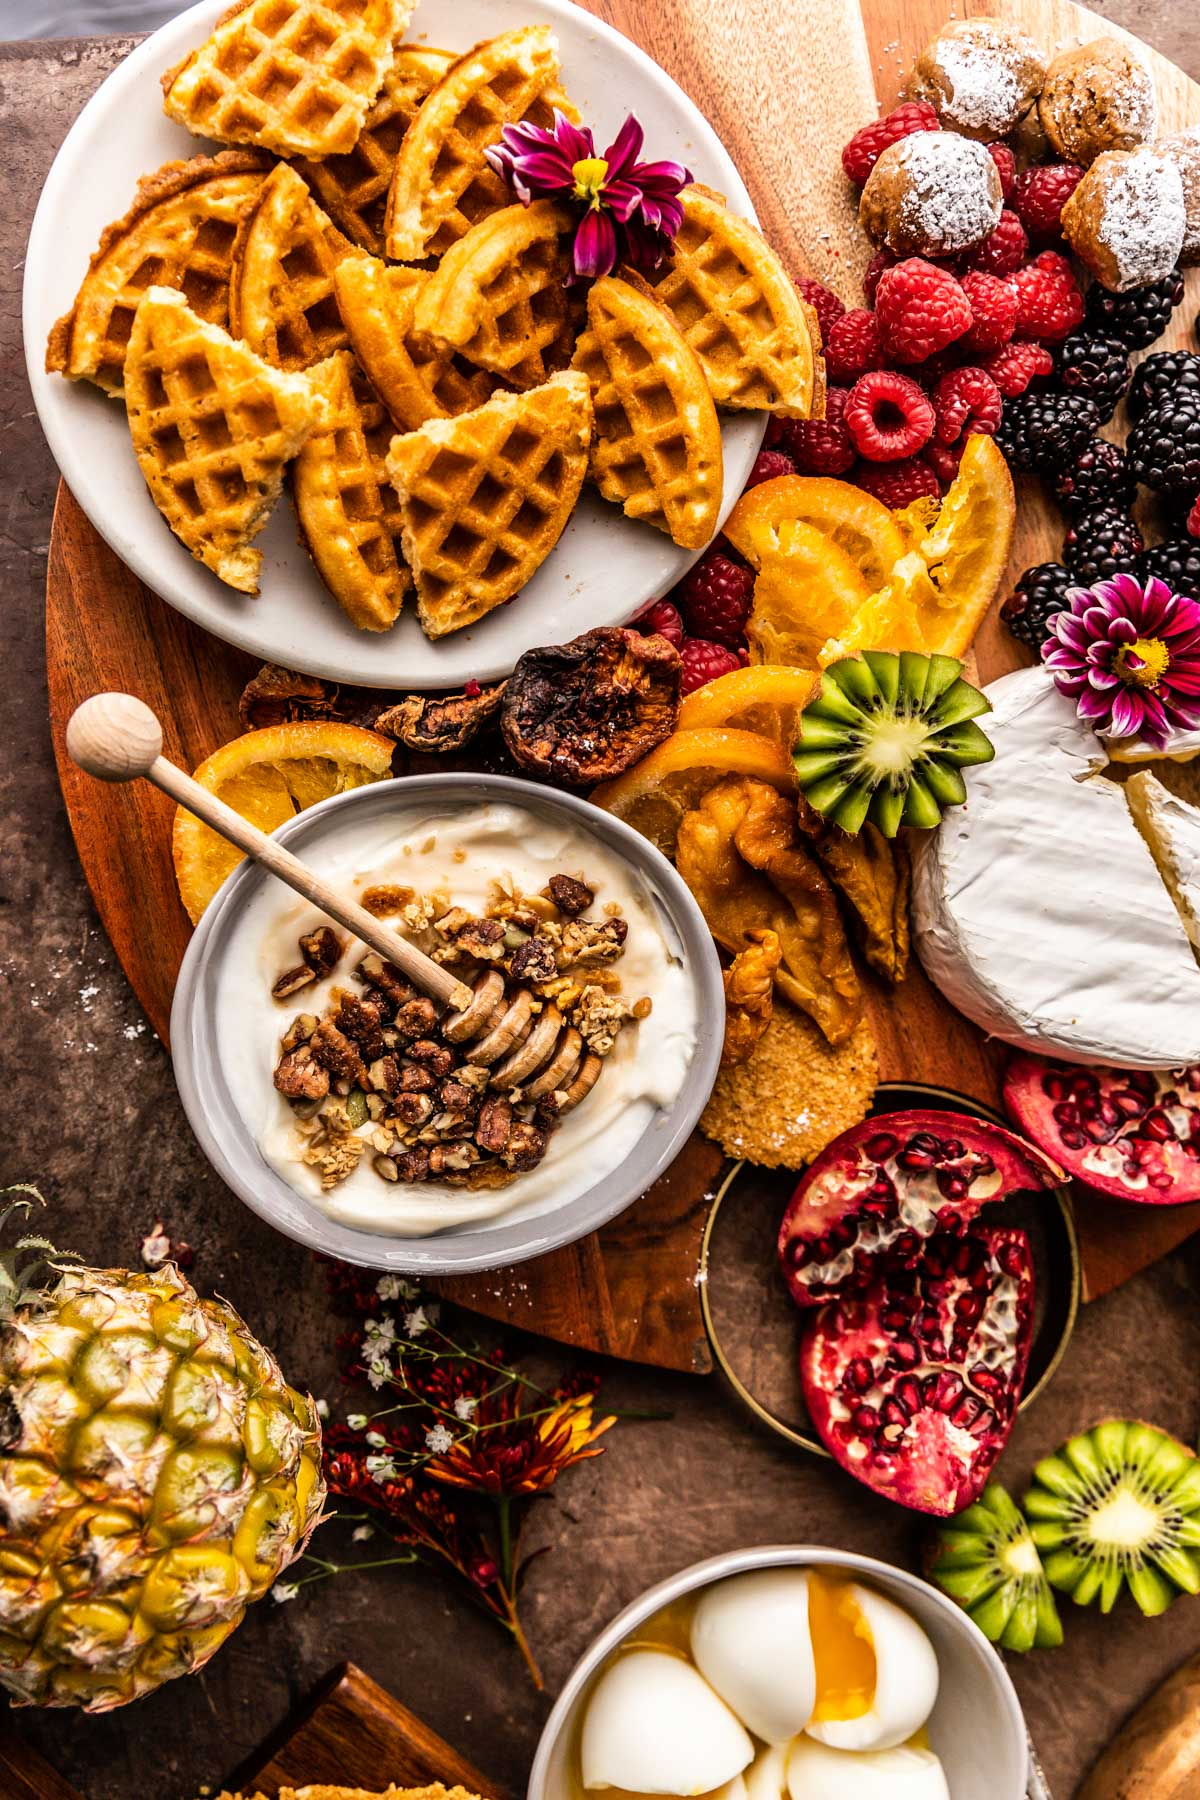 Brunch Boards with yogurt, waffles, and berries